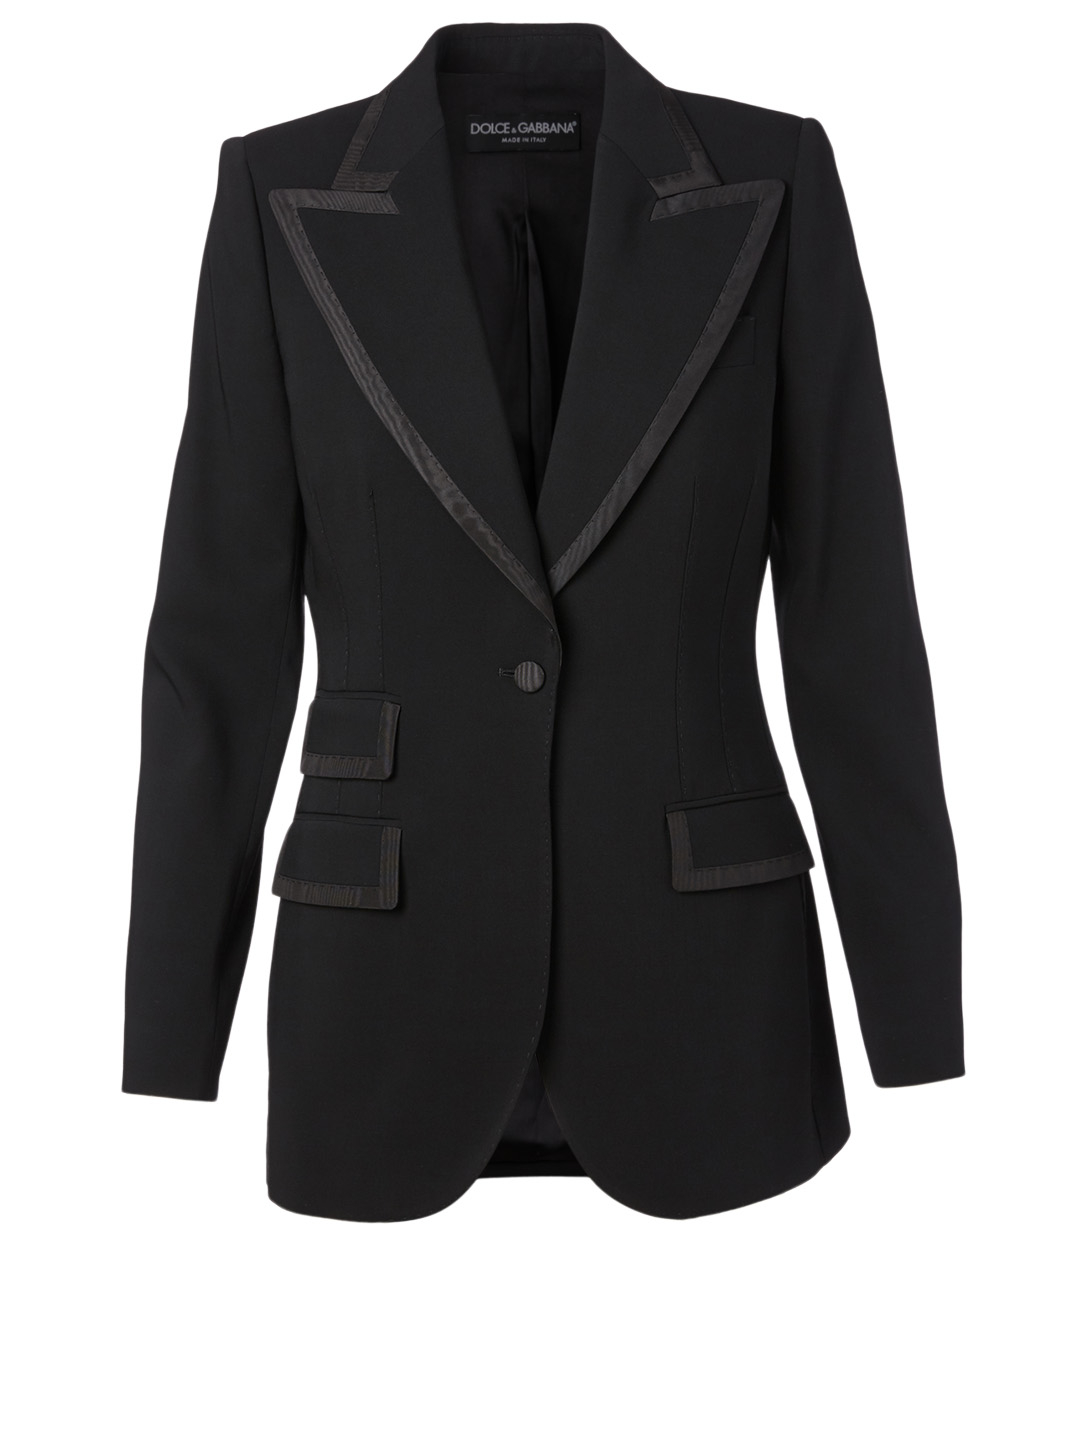 DOLCE & GABBANA Wool And Silk Blazer With Piping Women's Black